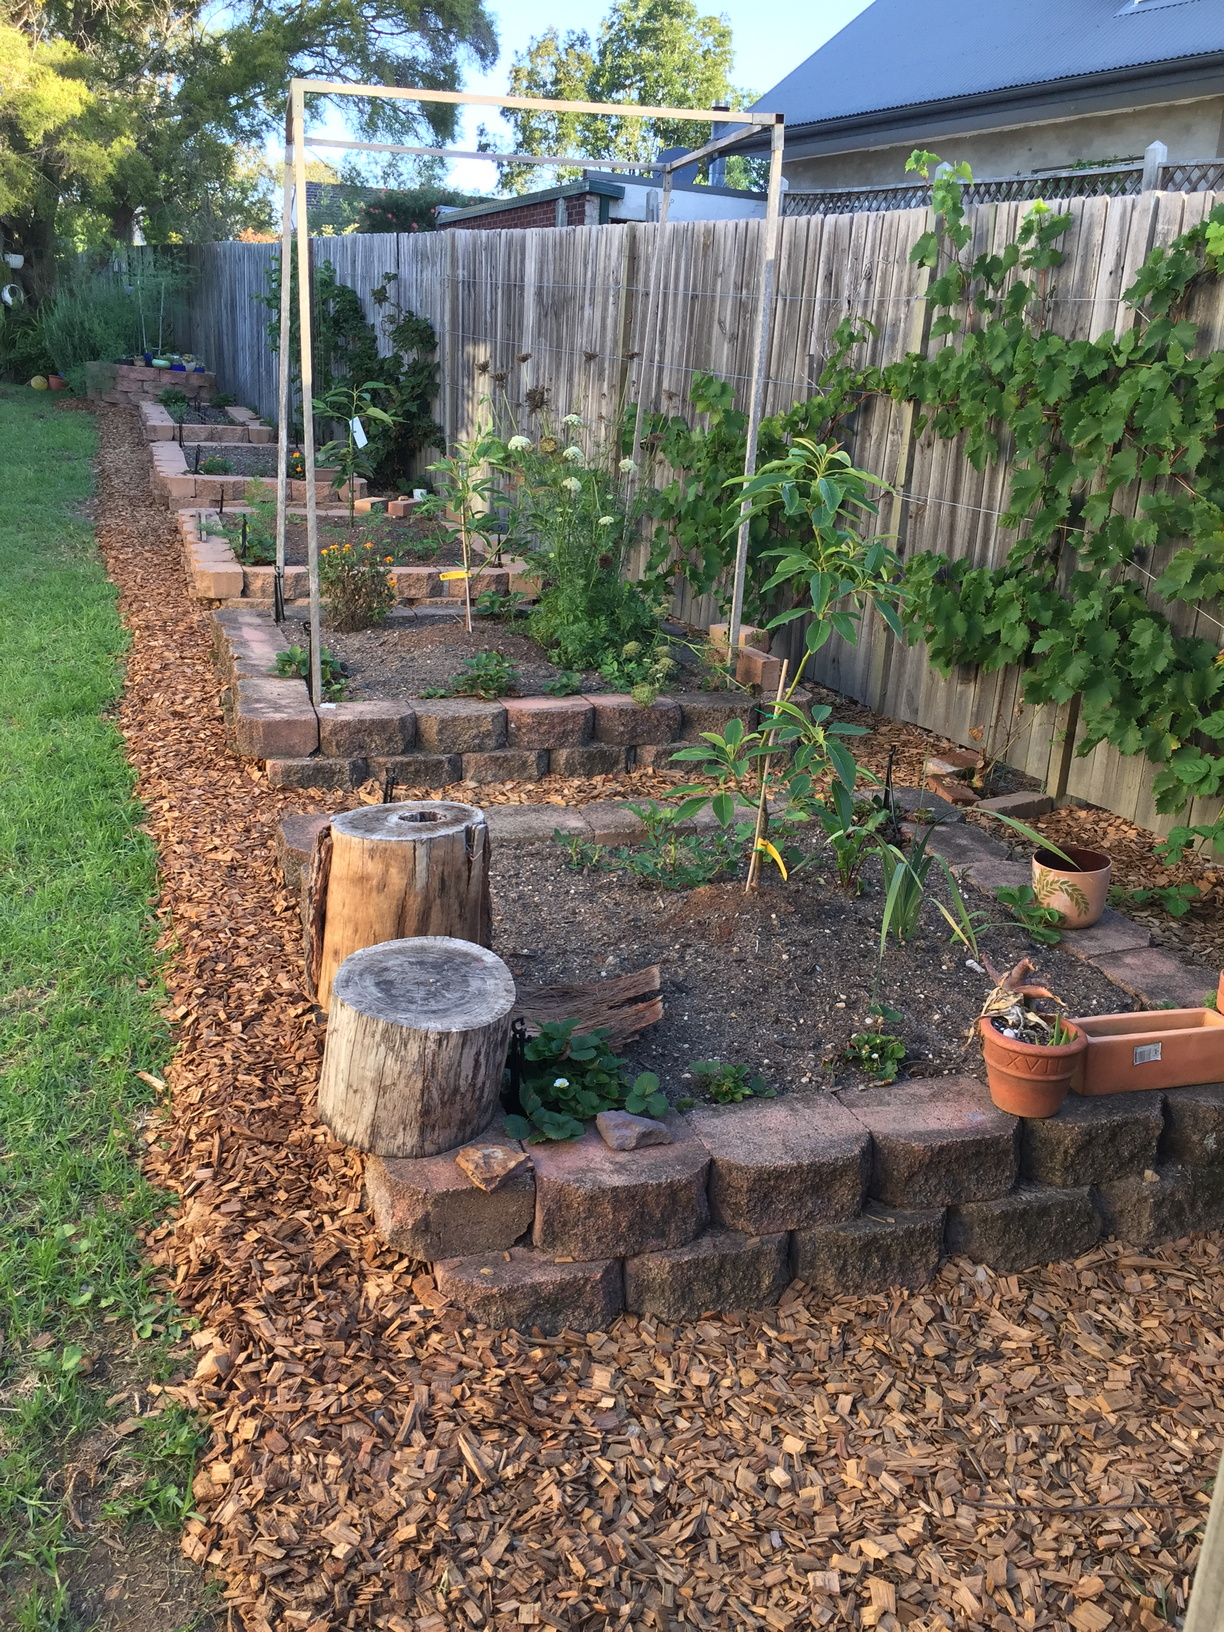 Raised veggie beds, the closest three have a young avocado tree each. Fuerte closest, Hass, then Sheppard. Behind the beds on the fence, I have a black muscat grape, a seedless sultana grape, thornless loganberry, thornless blackberry and passionfruit.